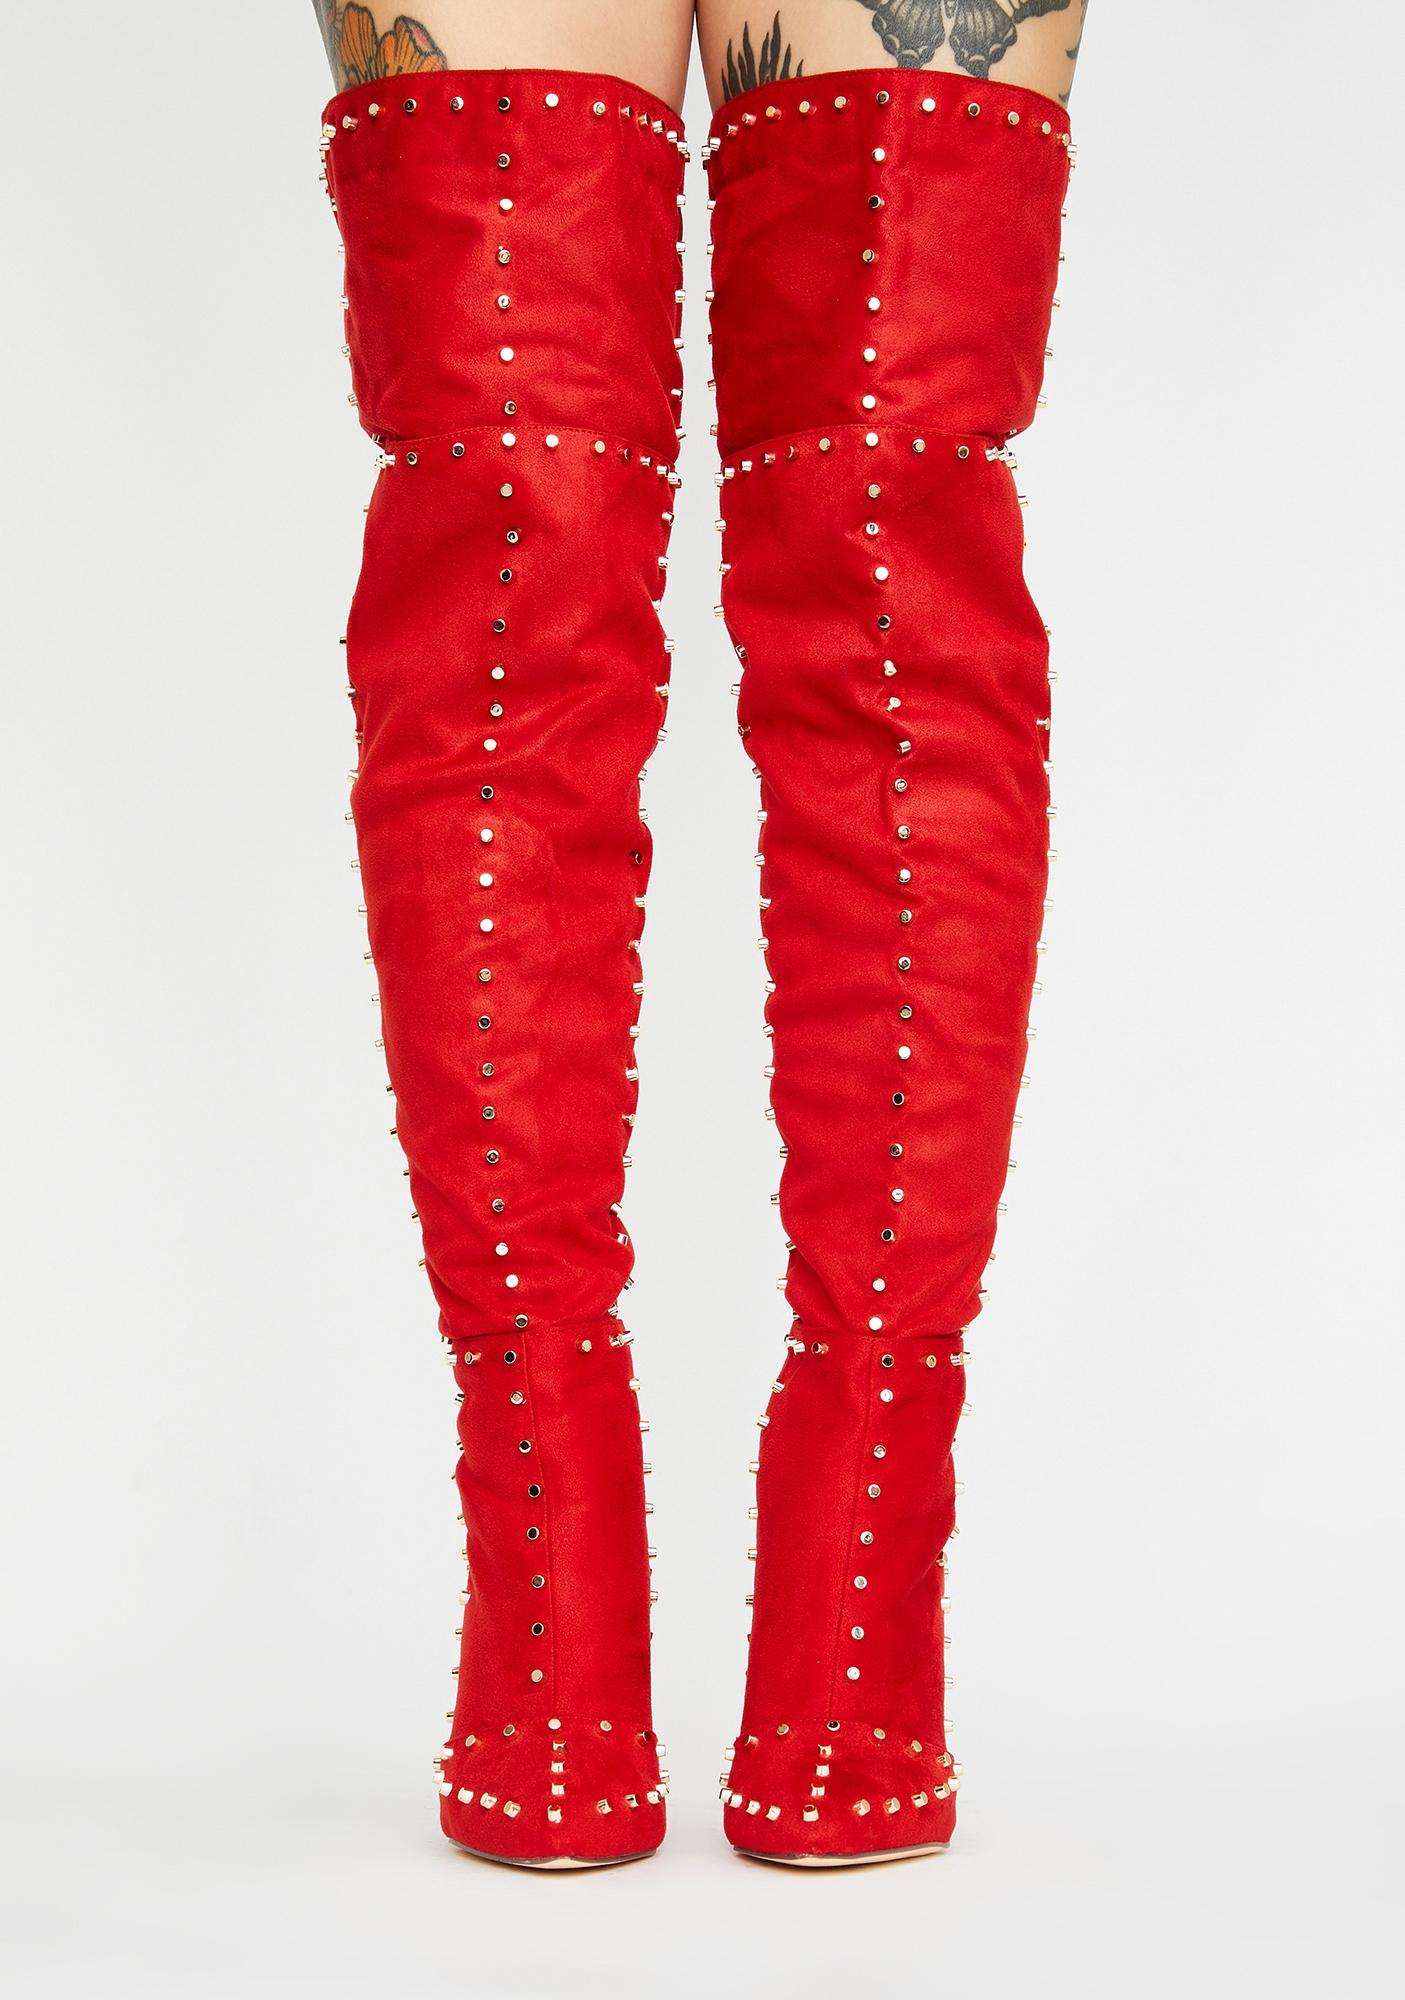 Vixen Alert Knee High Boots